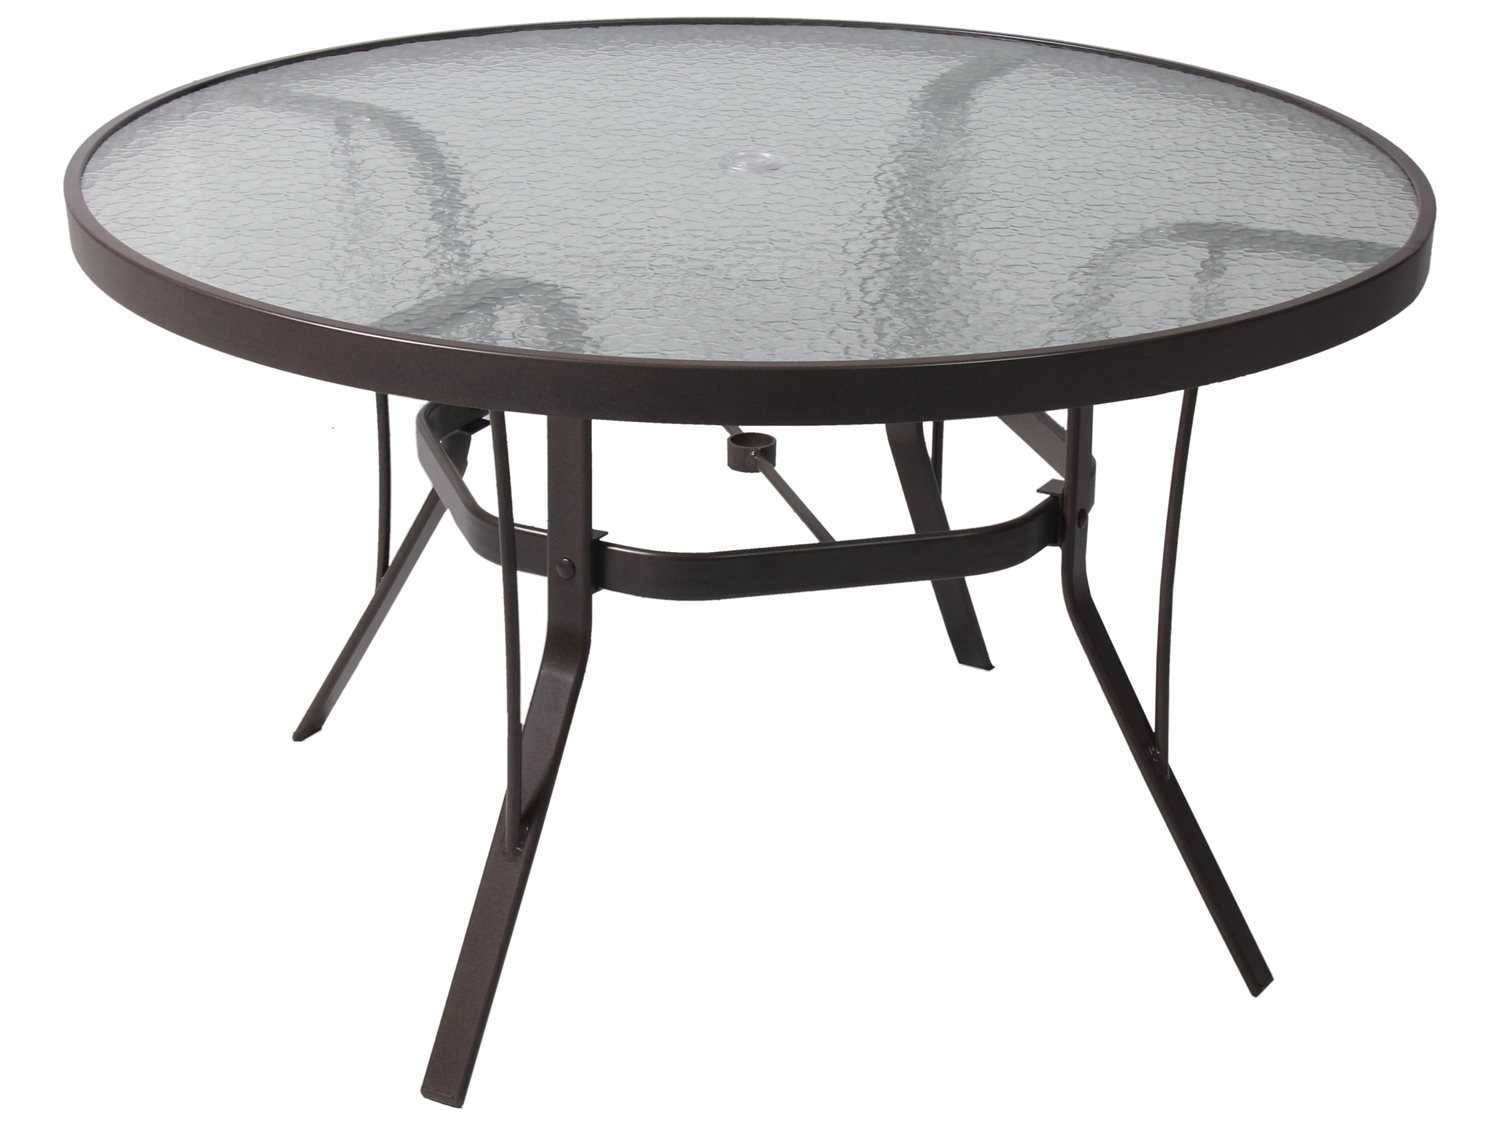 36 round glass table top